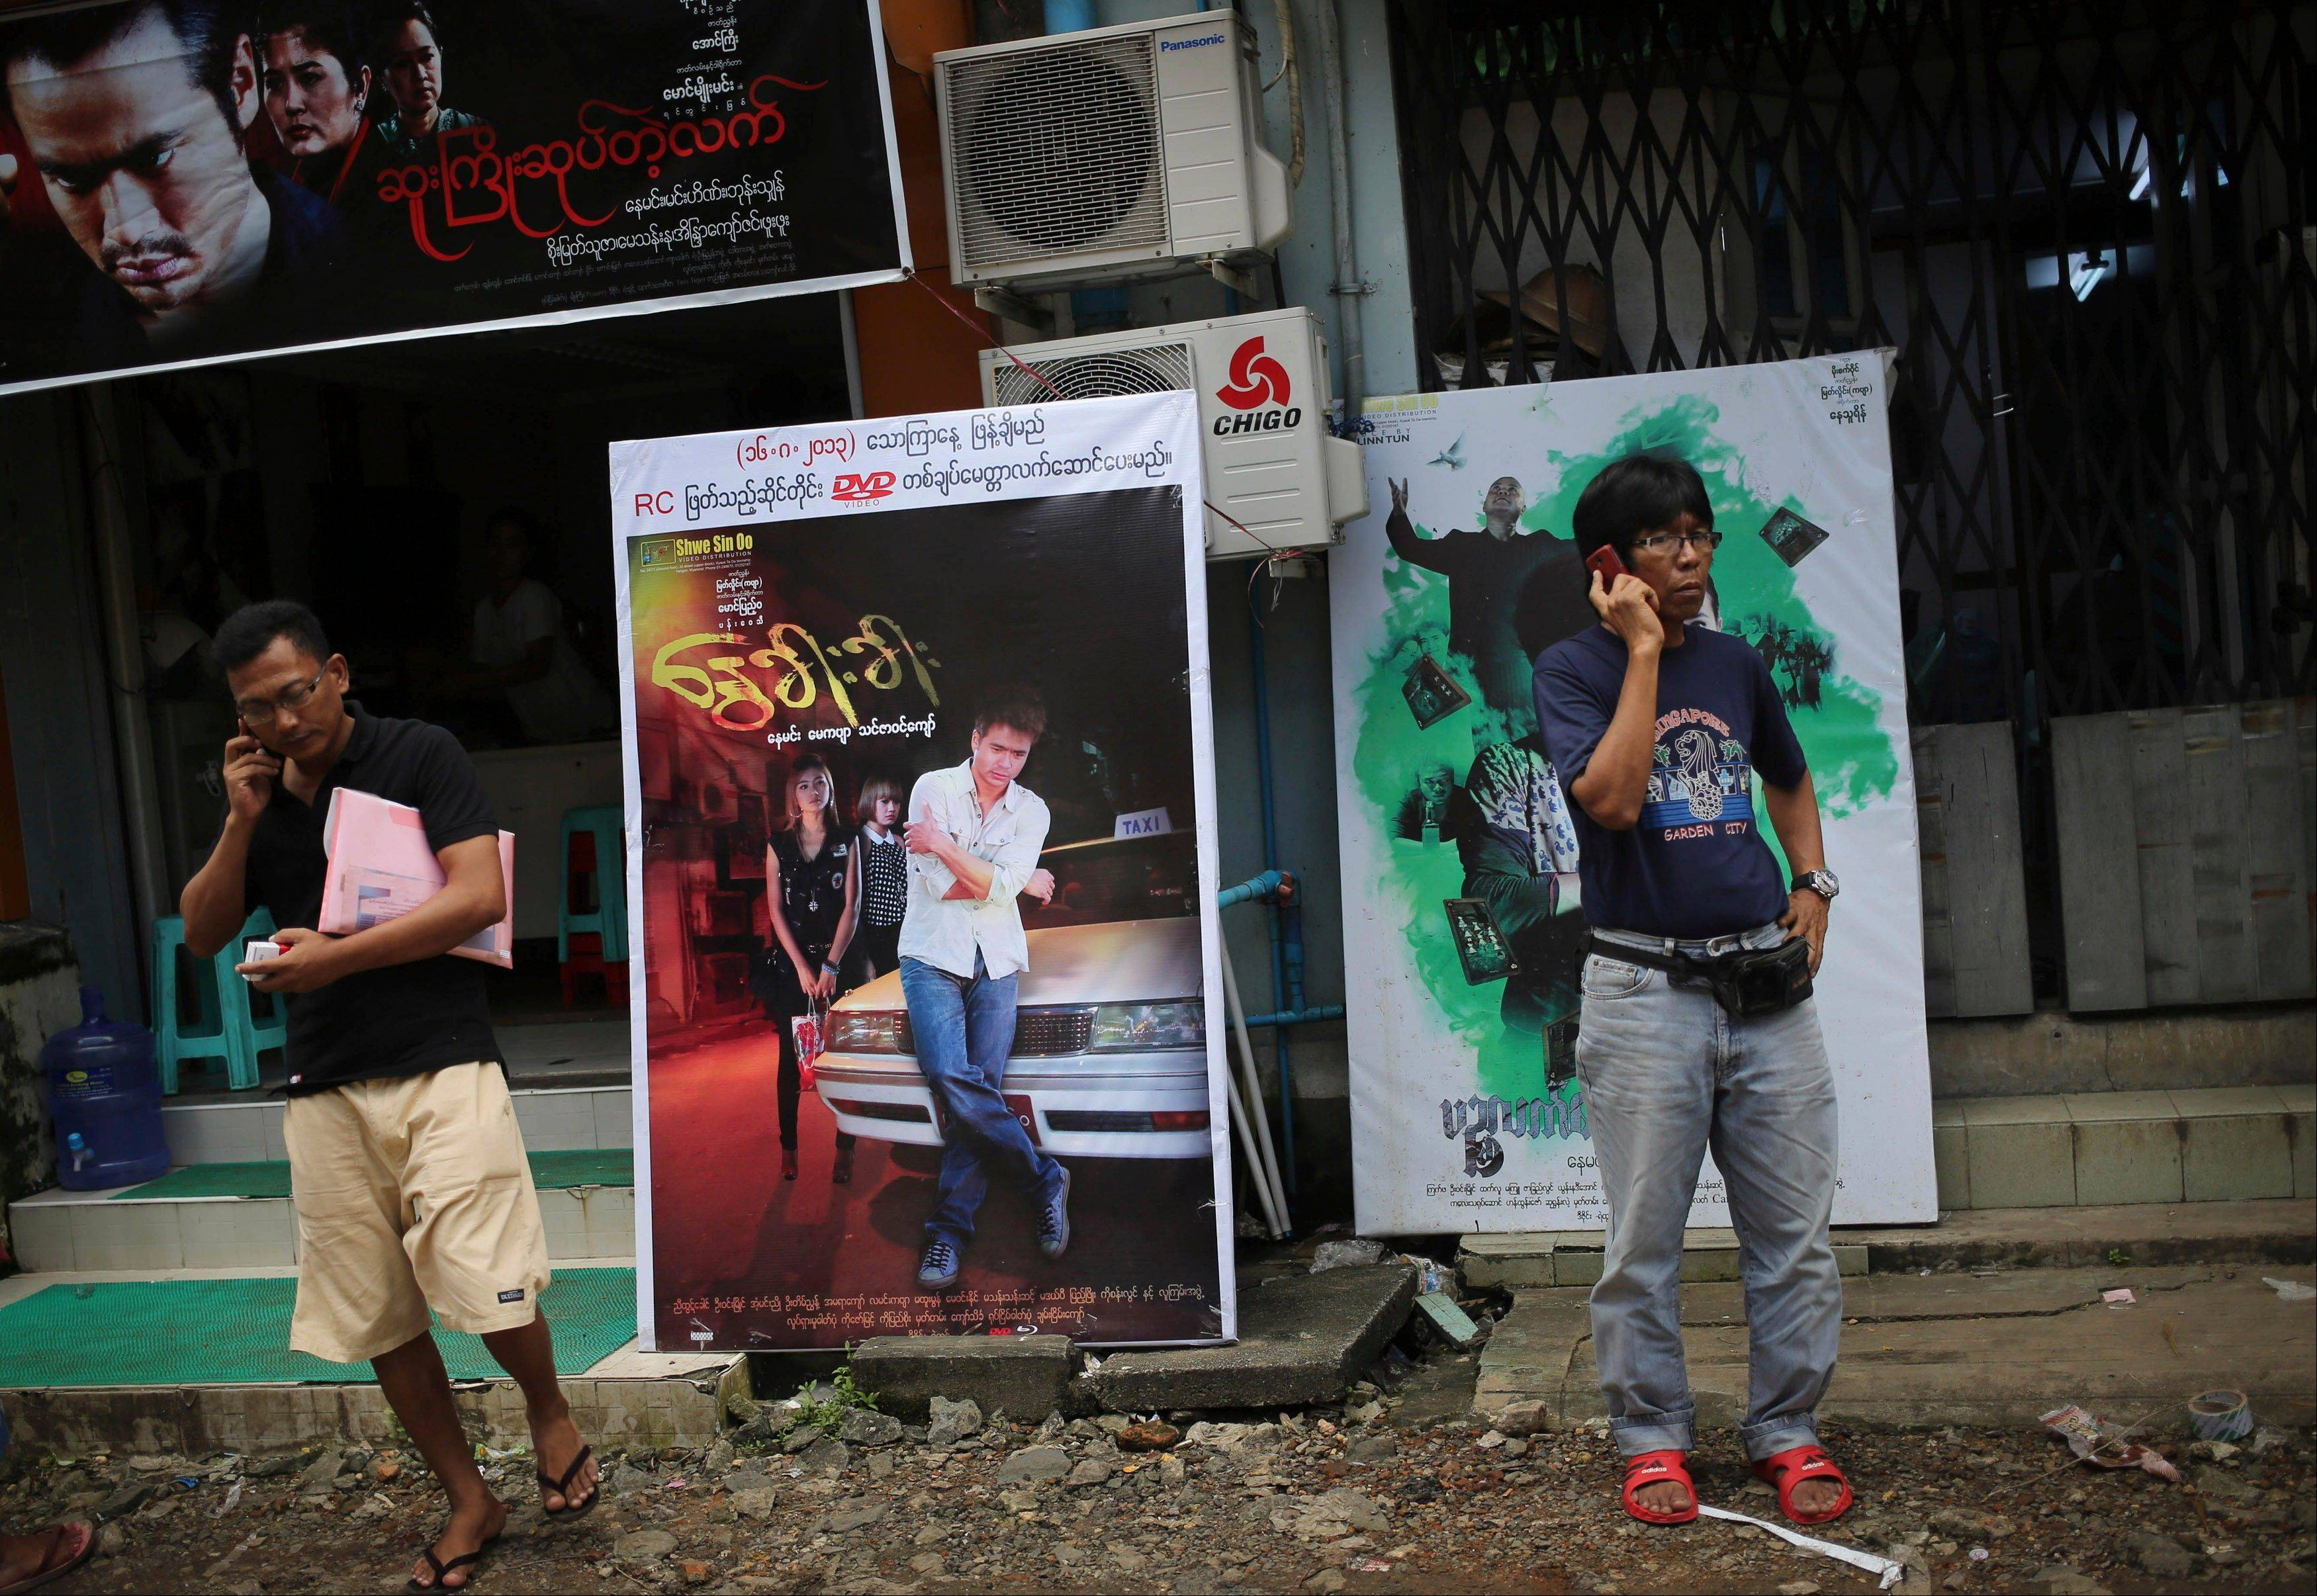 Burmese people use their cell phones amidst the tightly packed enclave of video production houses, movie-poster design studios and worse-for-wear apartment buildings that serves as the tattered ground zero of the Burmese movie industry, in downtown Yangon, Myanmar.